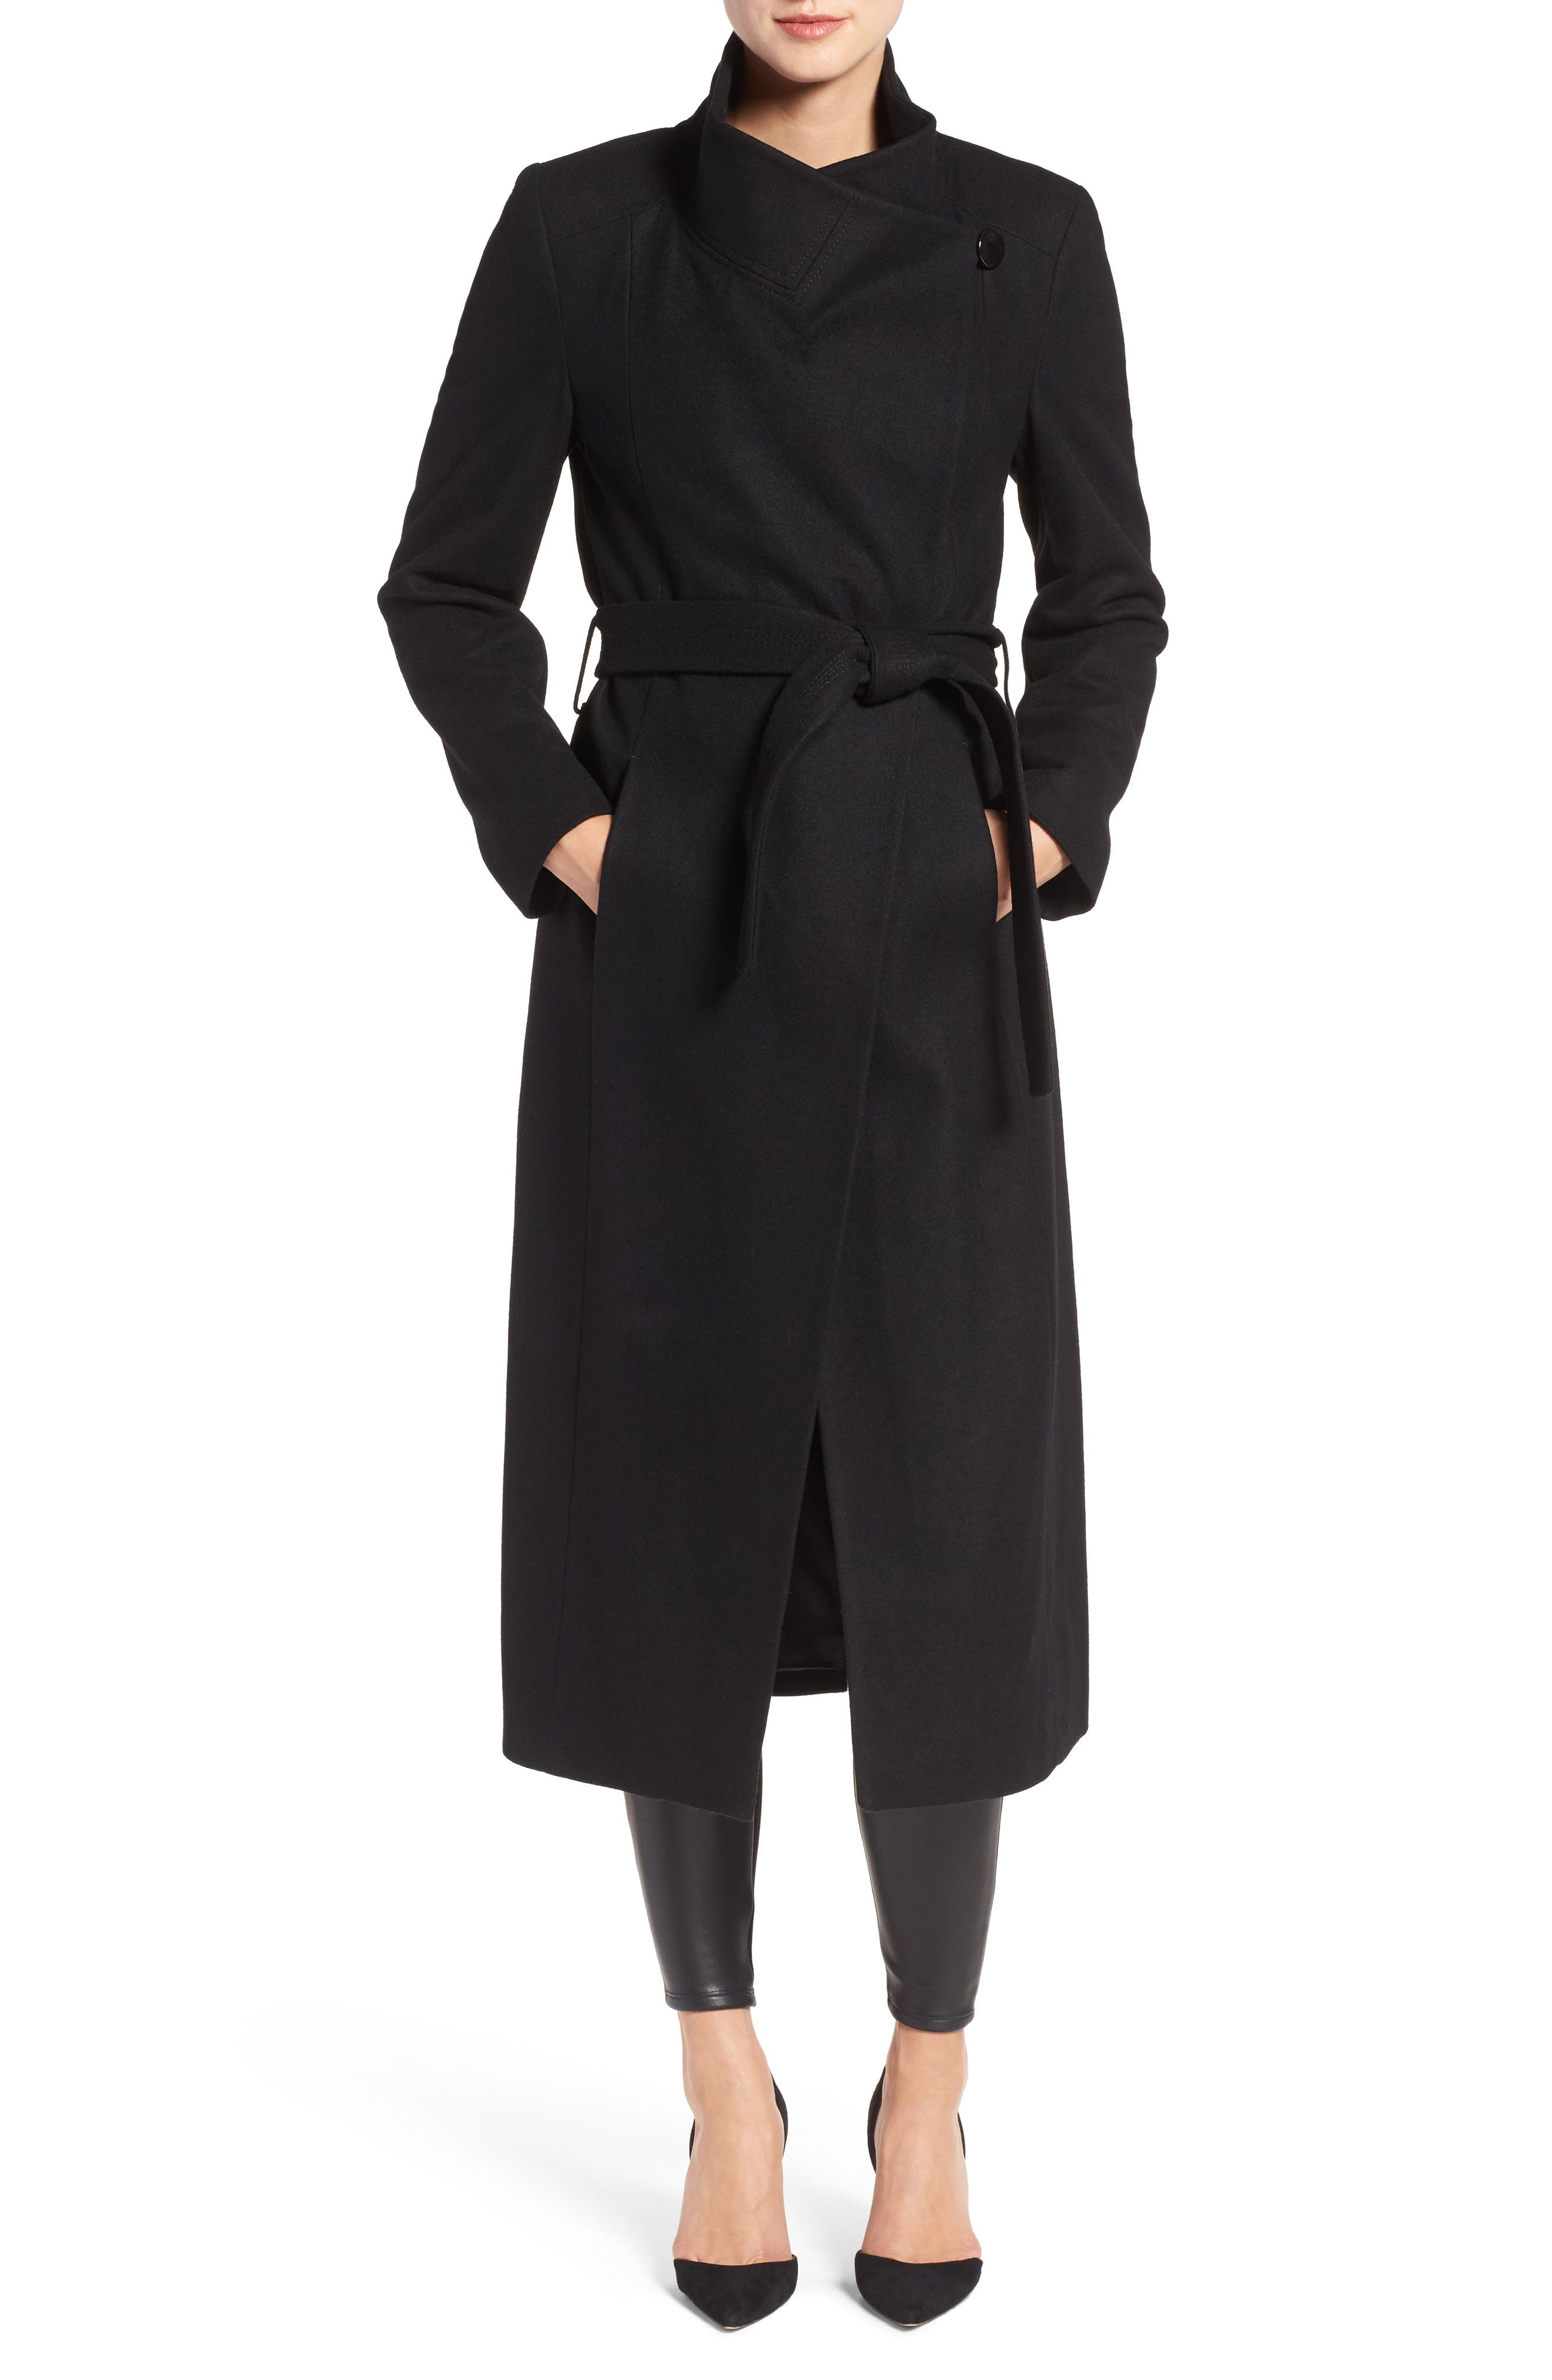 KENNETH COLE NEW YORK, Fencer Melton Wool Maxi Coat, Main thumbnail 1, color, 001